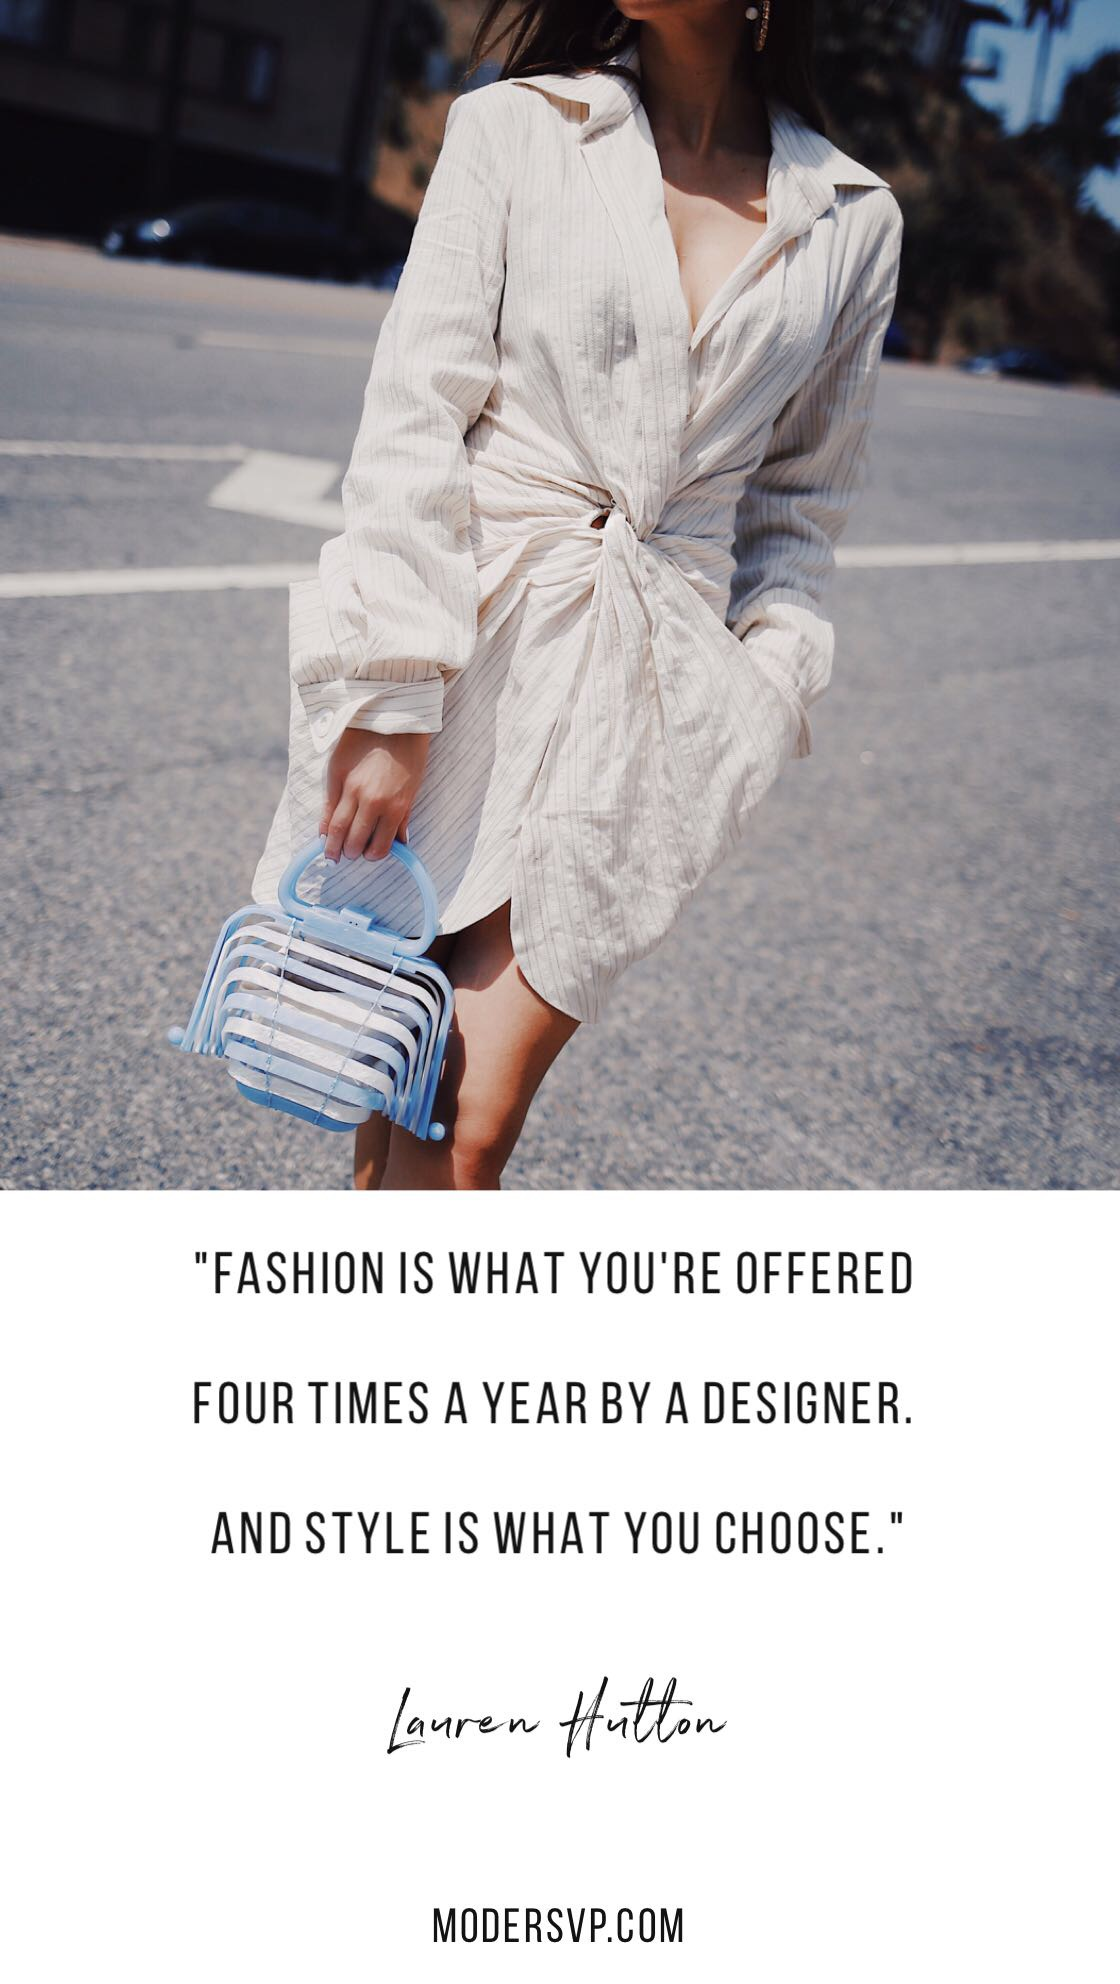 Best Style Quotes To Live By Inspirational Fashion Quotes To Start This New Season